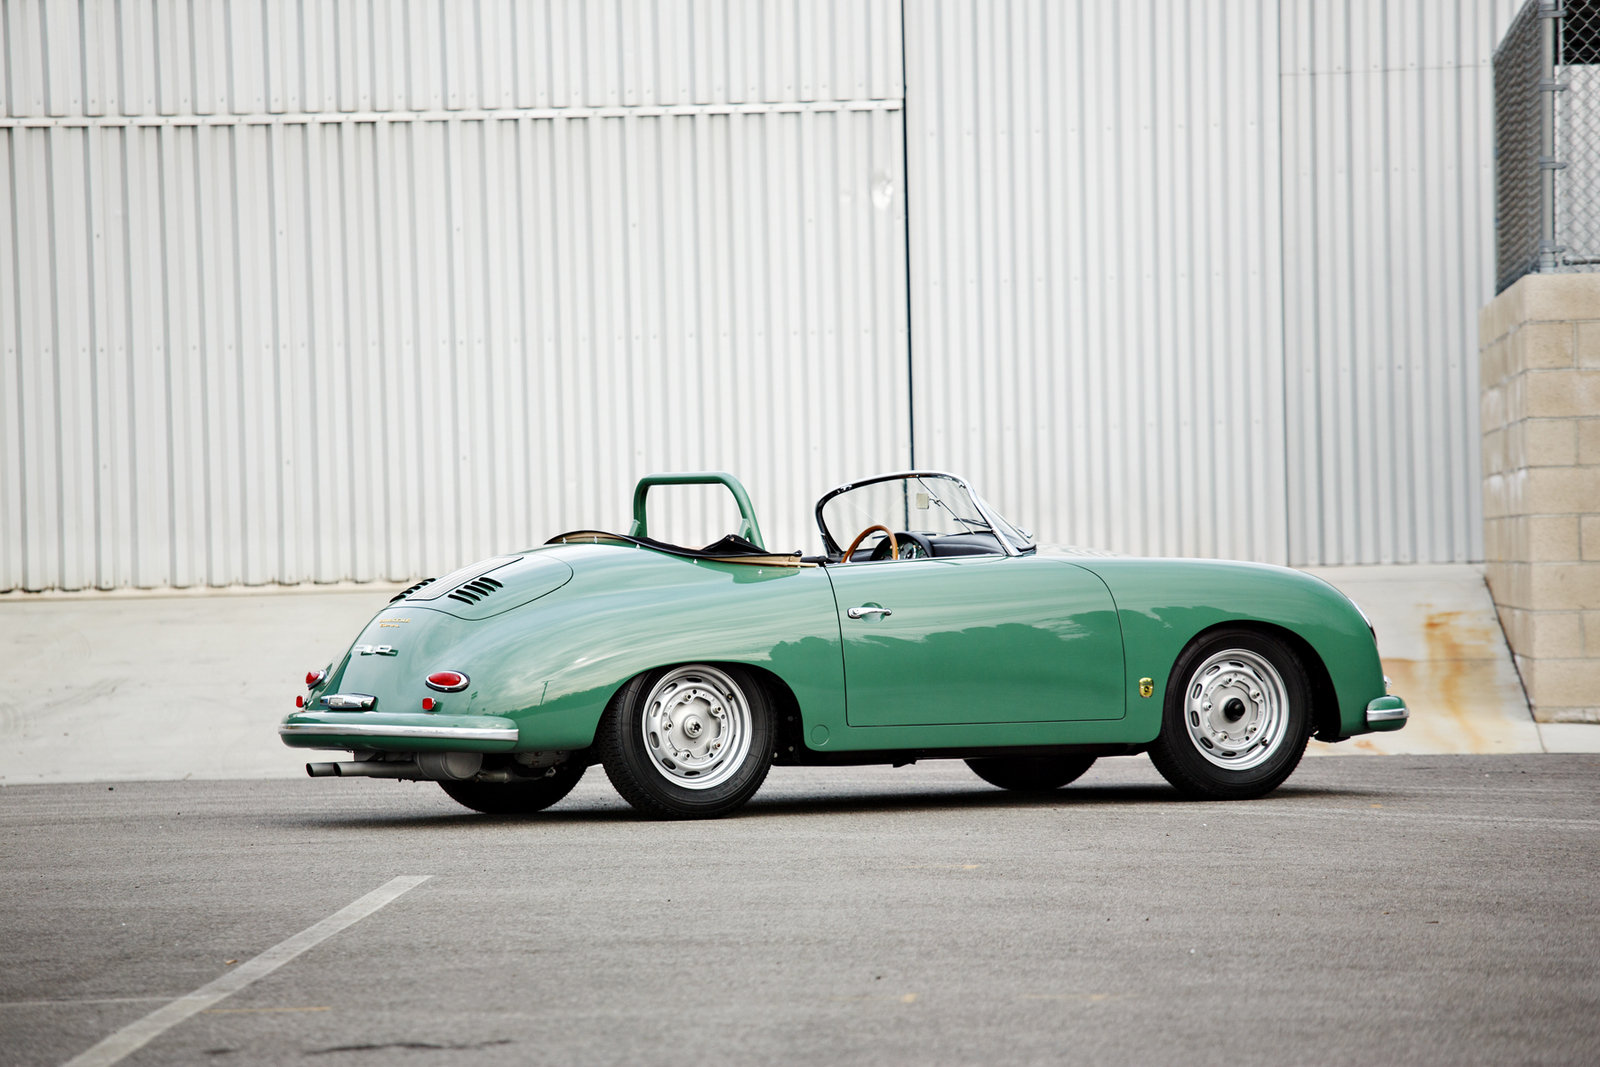 1958 porsche 356 a 1500 gs gt carrera speedster picture 663583 car review top speed. Black Bedroom Furniture Sets. Home Design Ideas